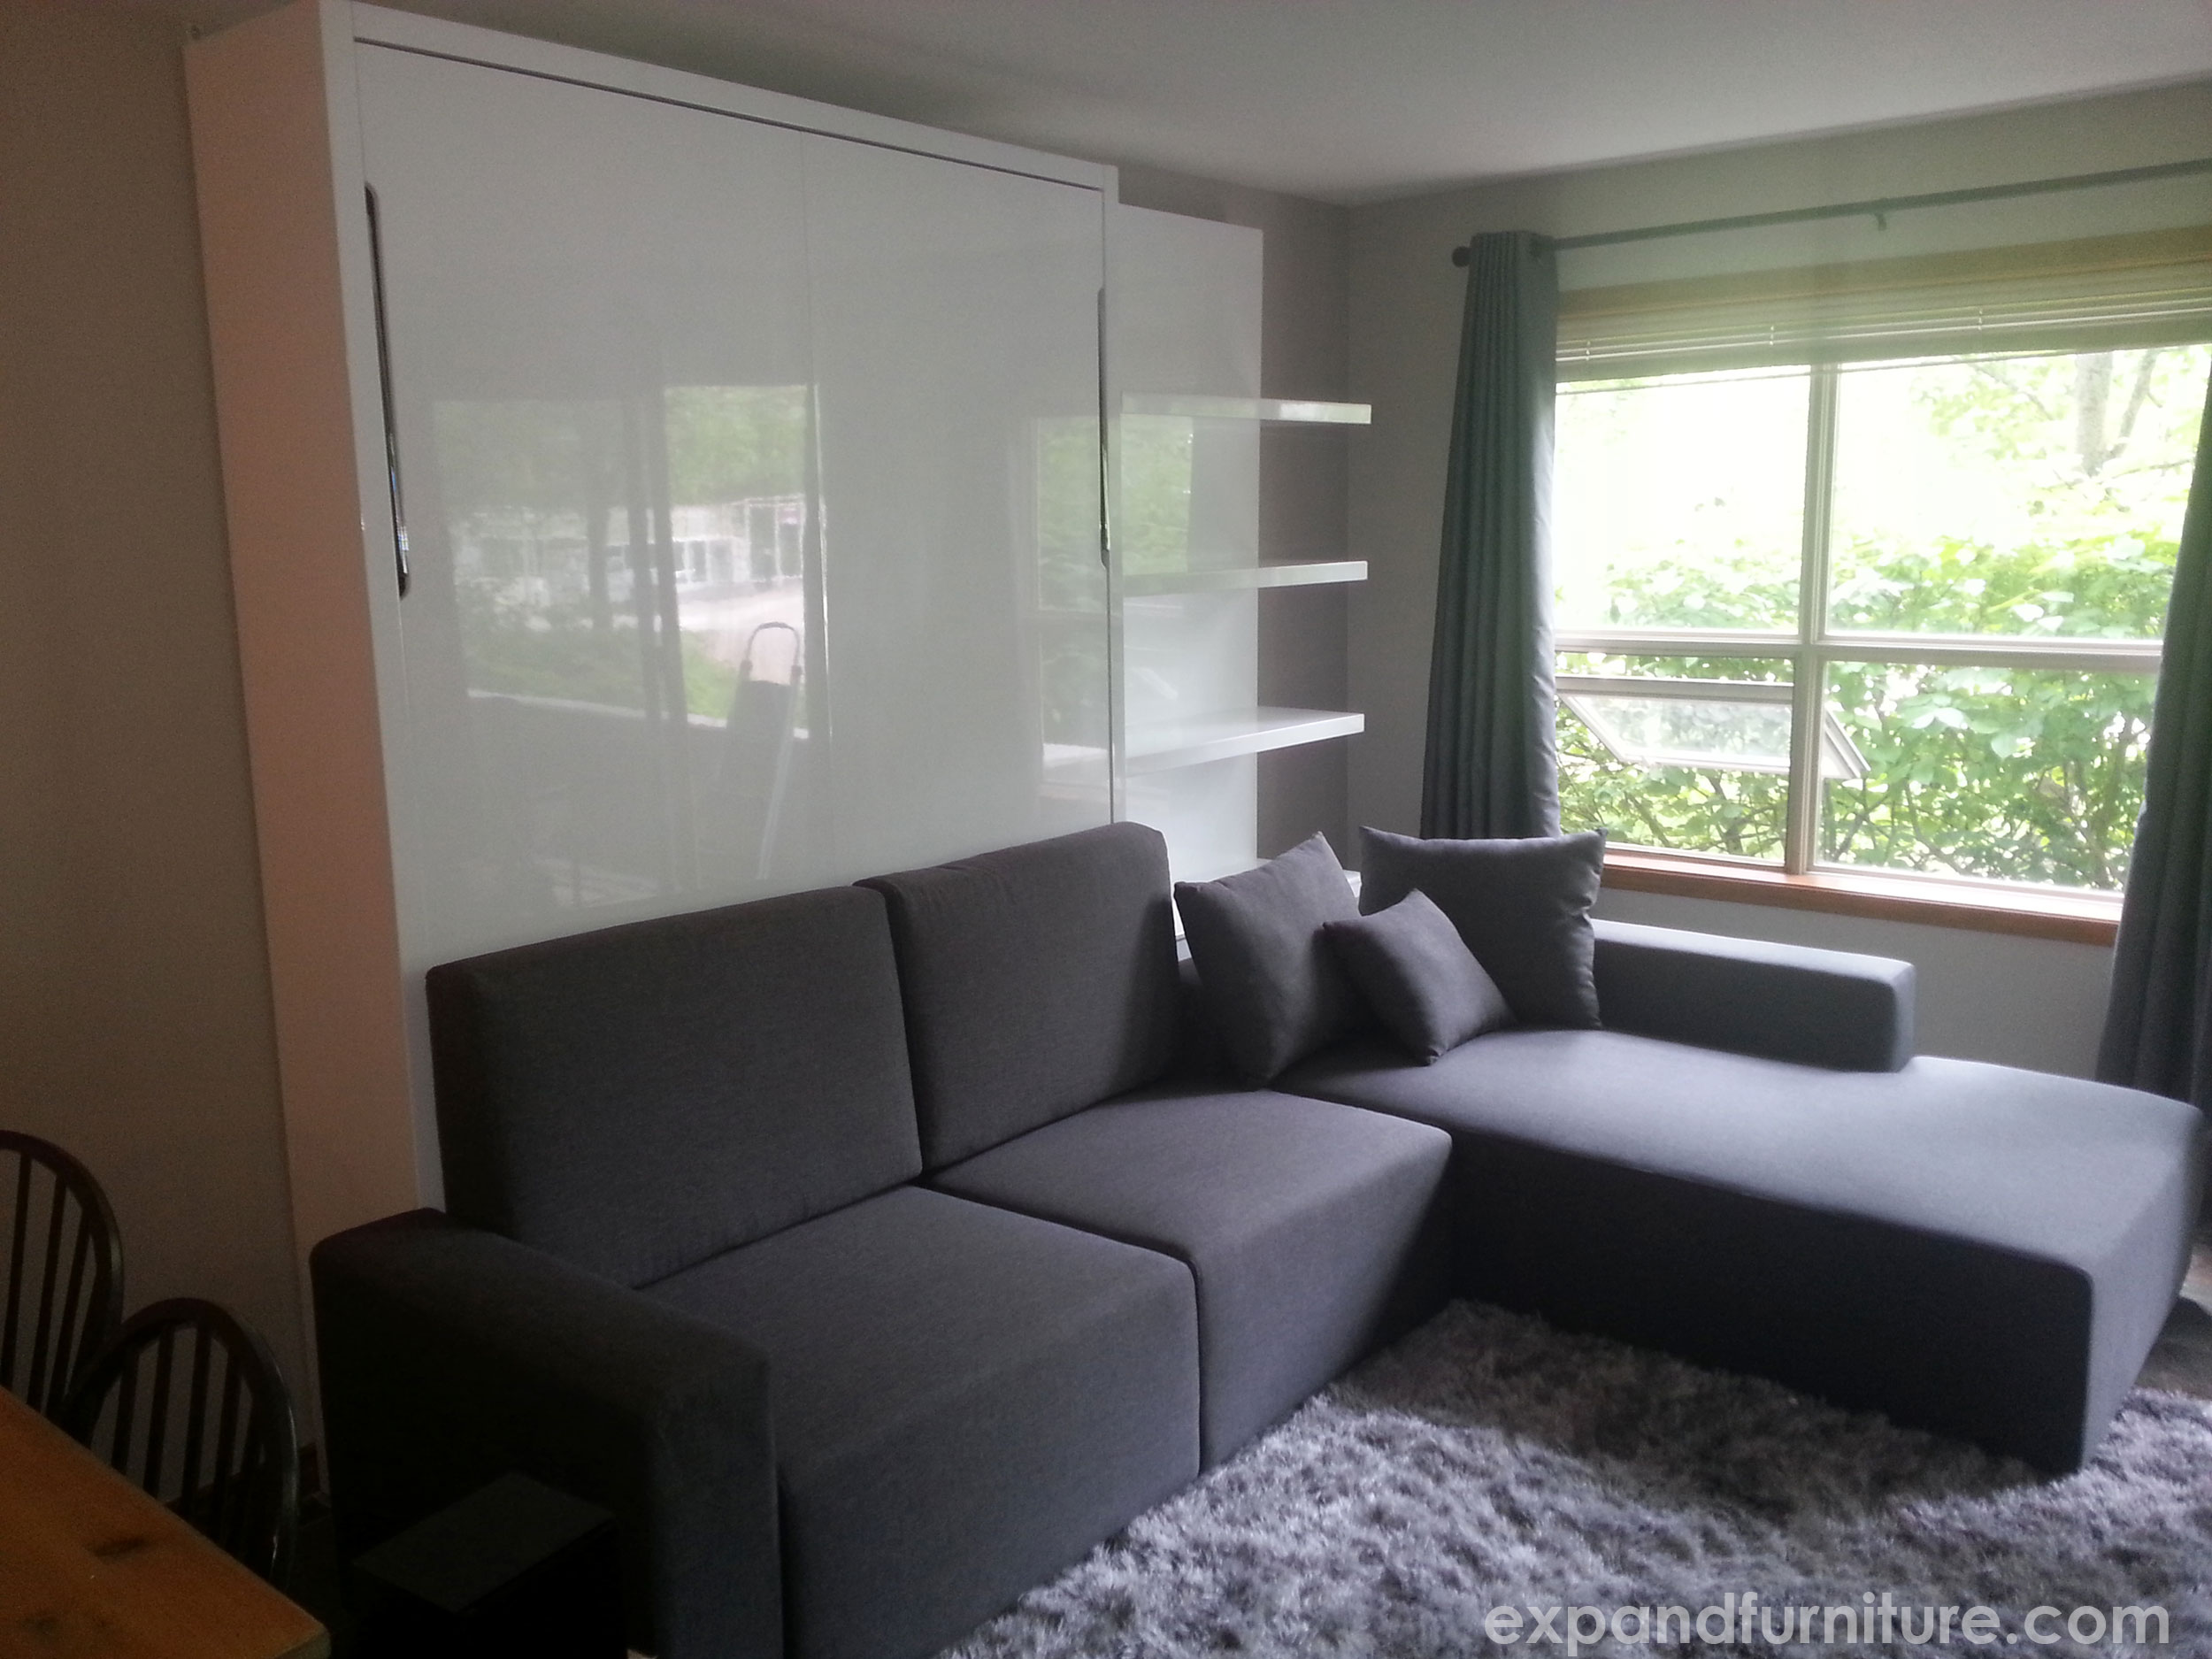 Smart Space Saving Ideas For Your Home Expand Furniture - Murphy bed couch ideas space savers